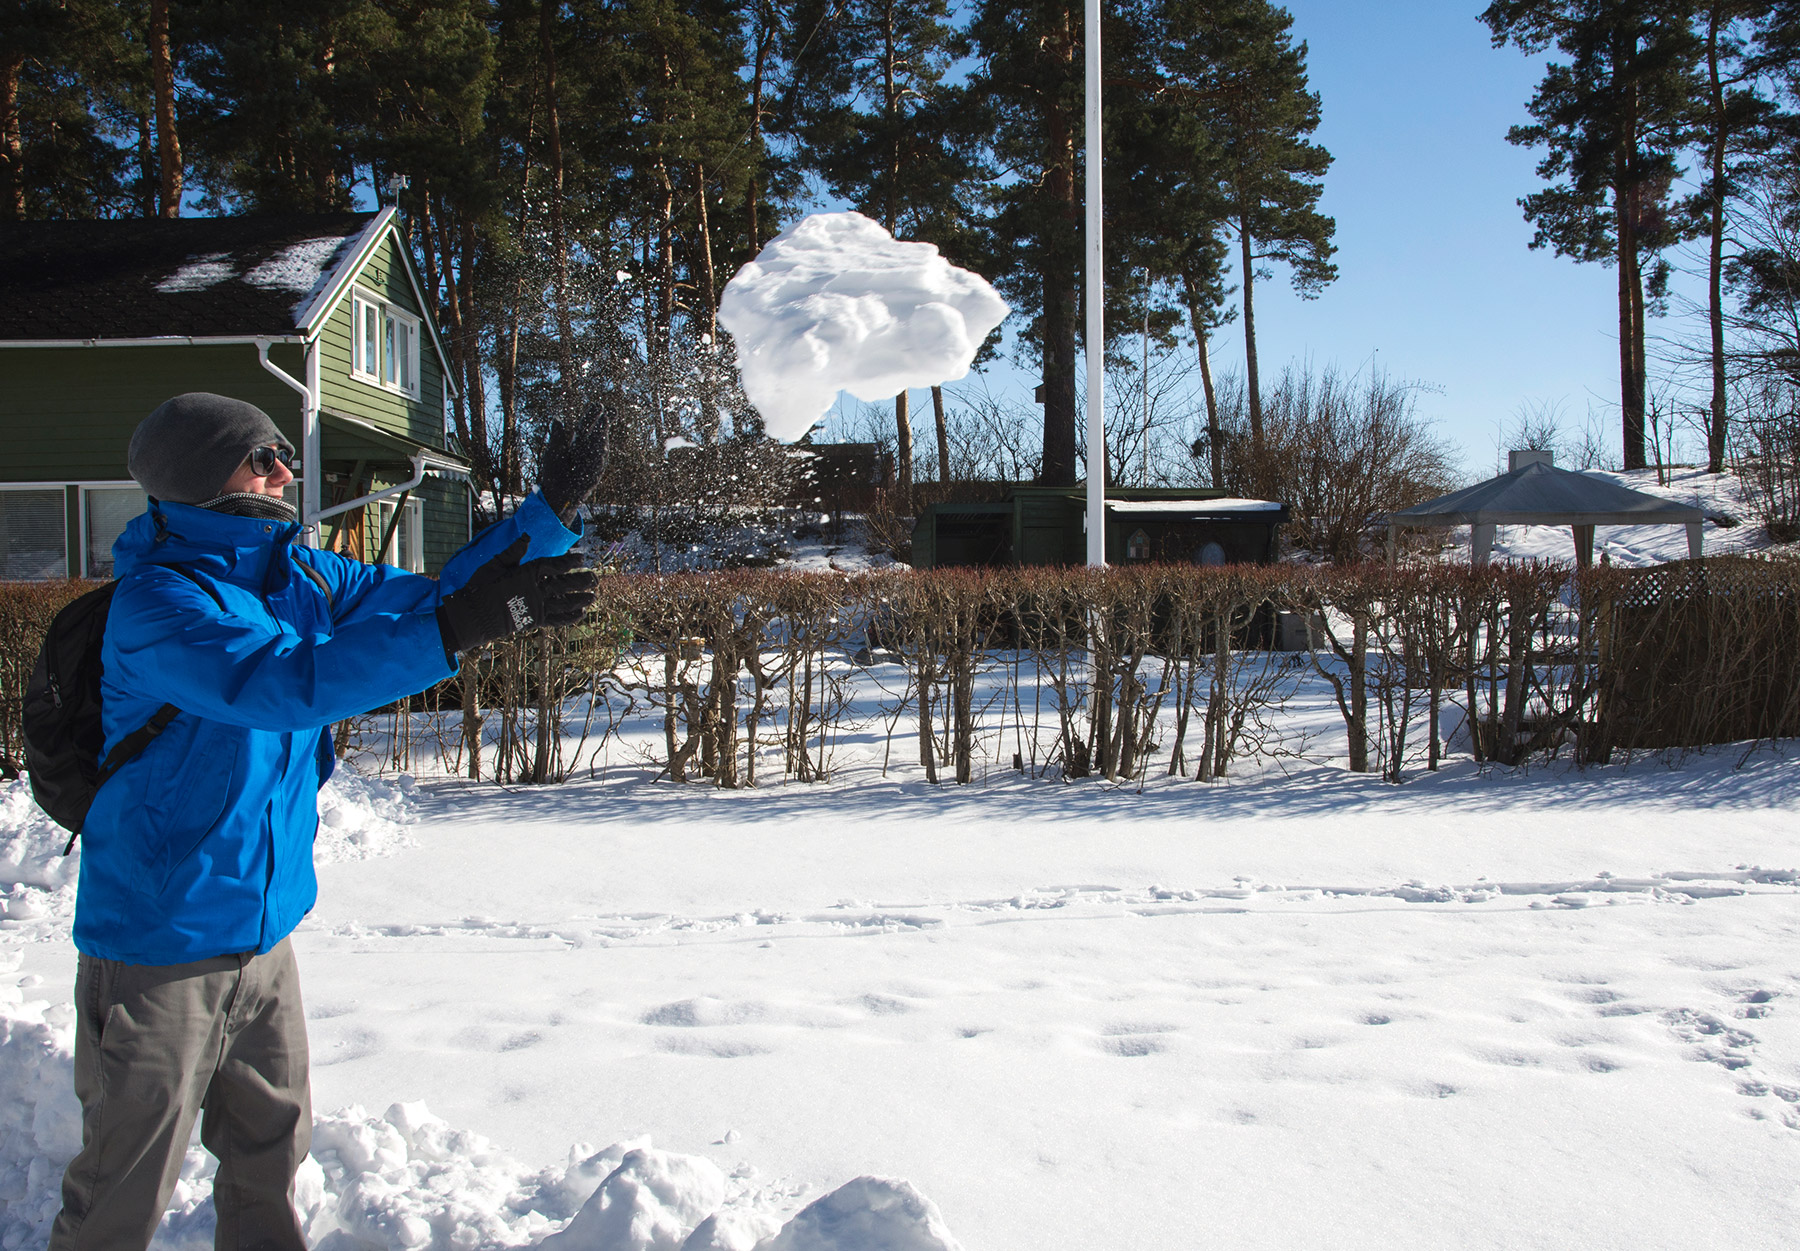 Man throwing giant snowball